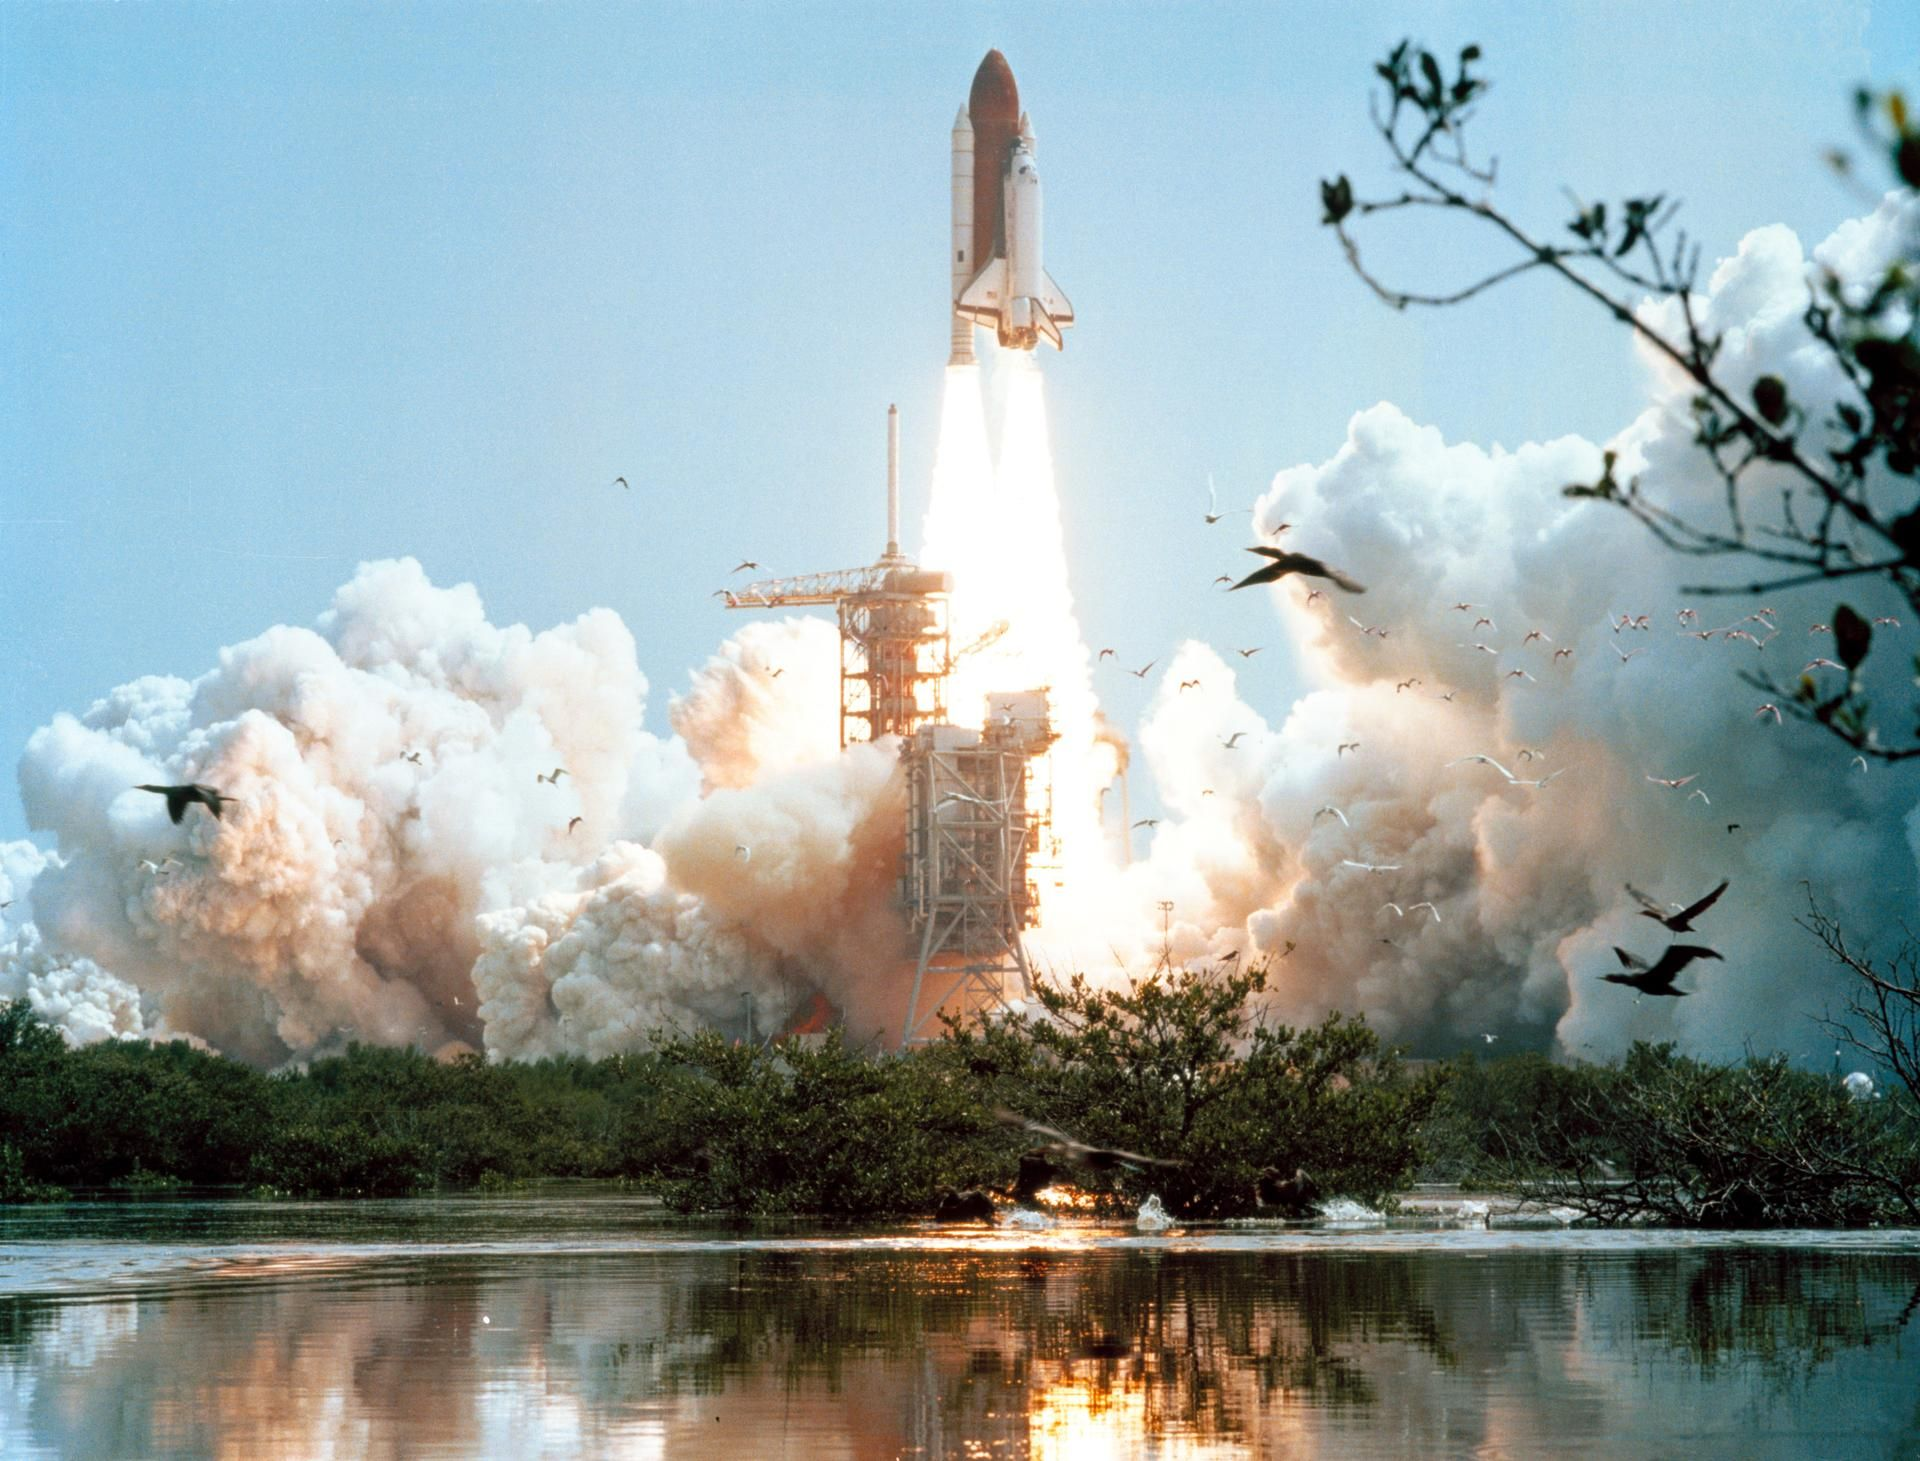 space shuttle columbia year - photo #3